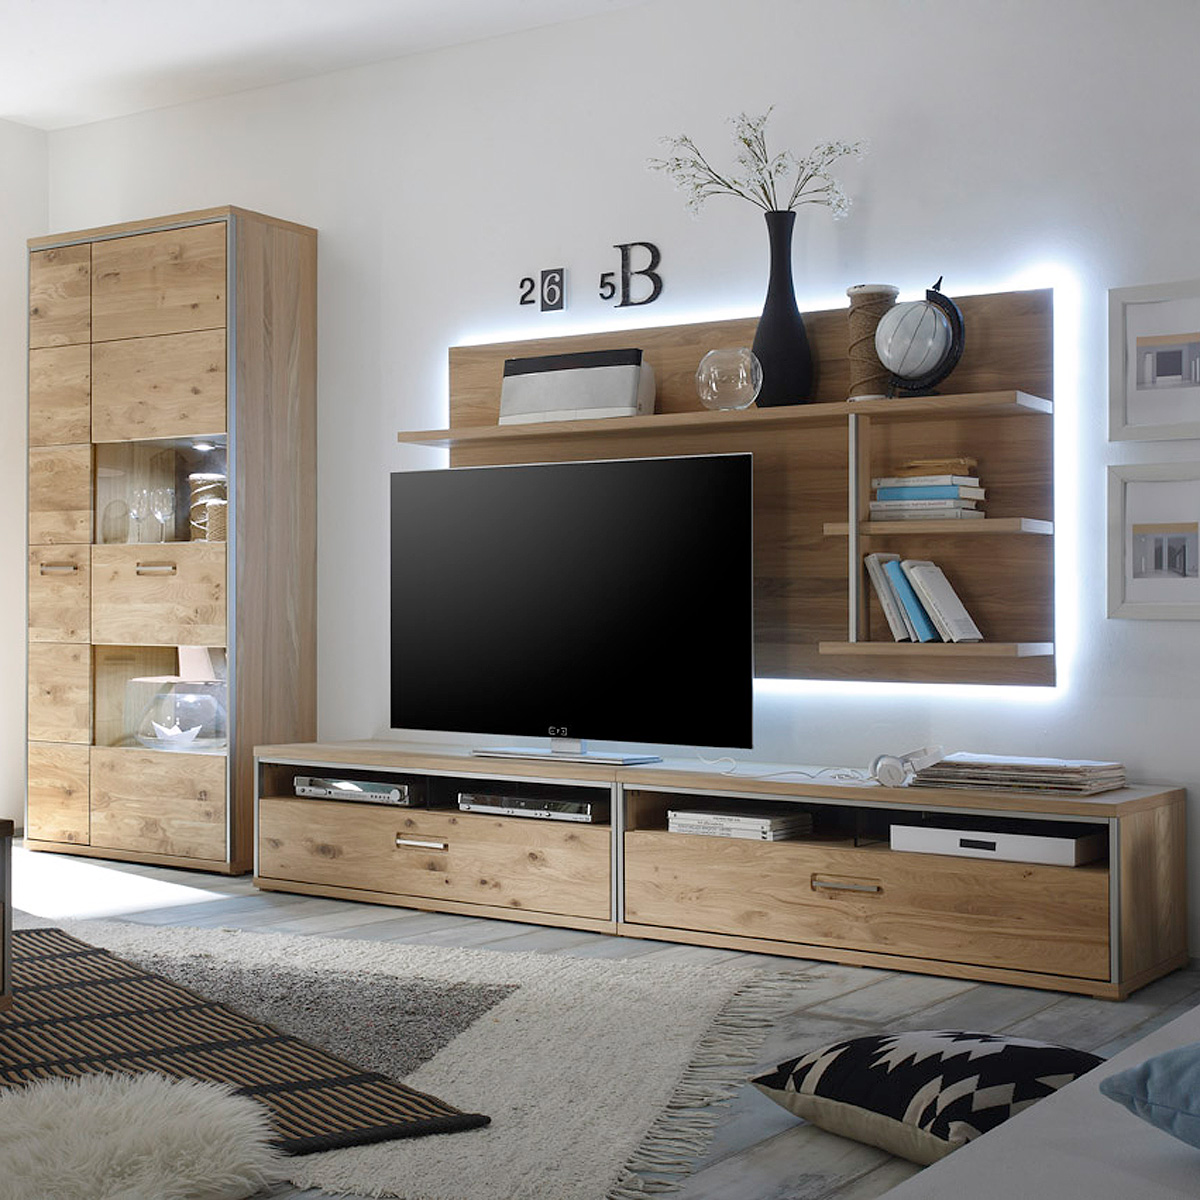 betten aus europaletten bauen. Black Bedroom Furniture Sets. Home Design Ideas